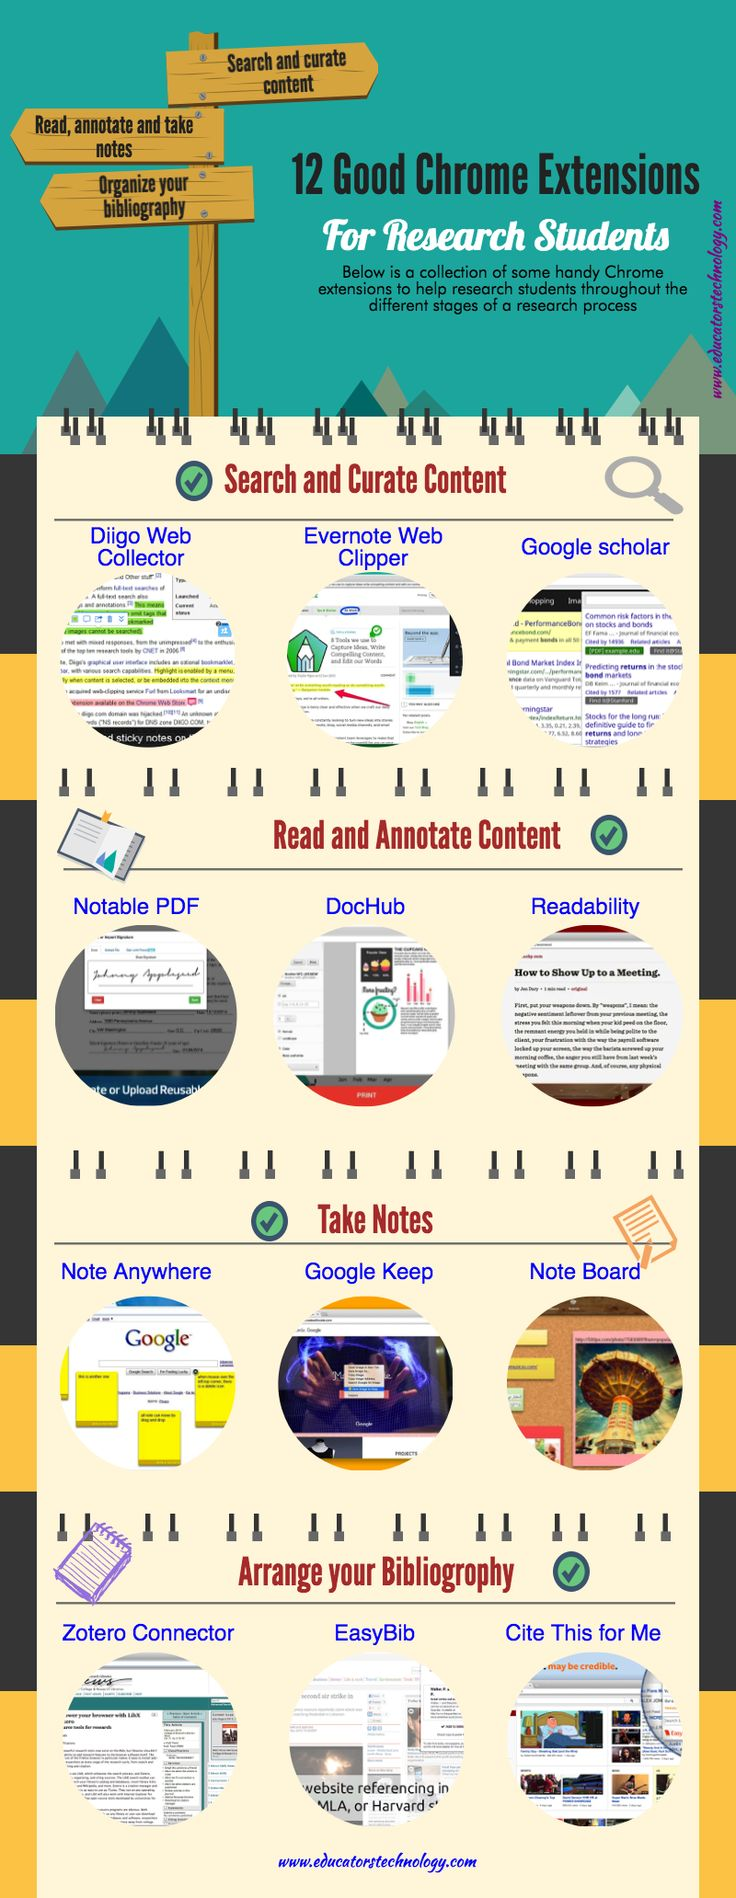 An Interesting Infographic Featuring 12 Good Chrome Extensions for Research…